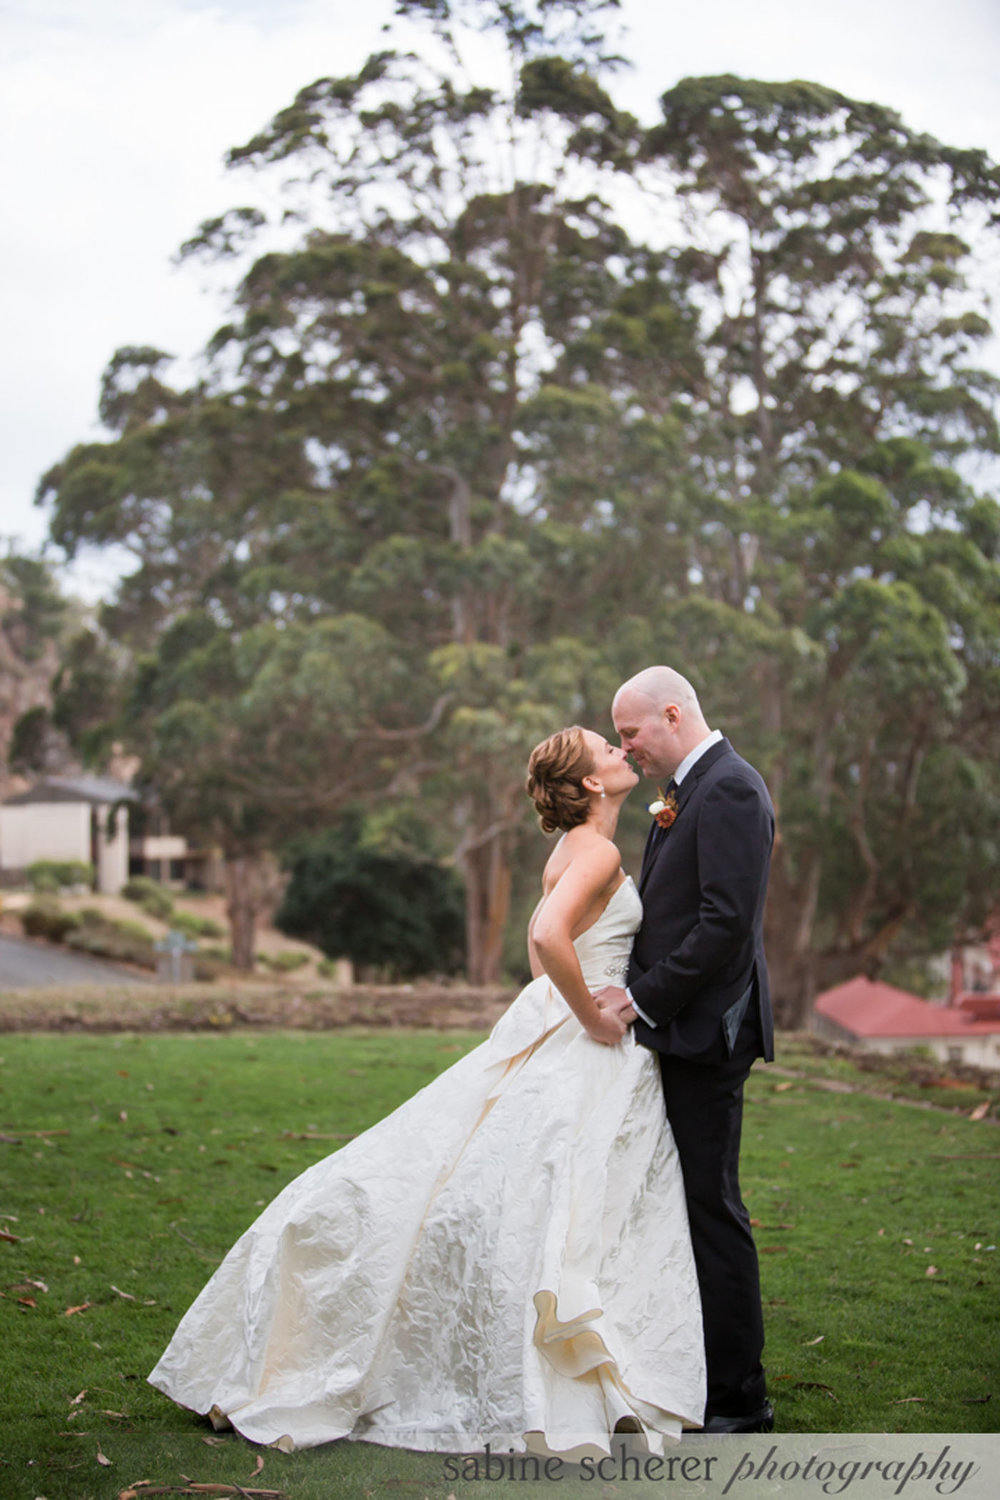 Romantic San Francisco Inspired Wedding at Cavallo Point